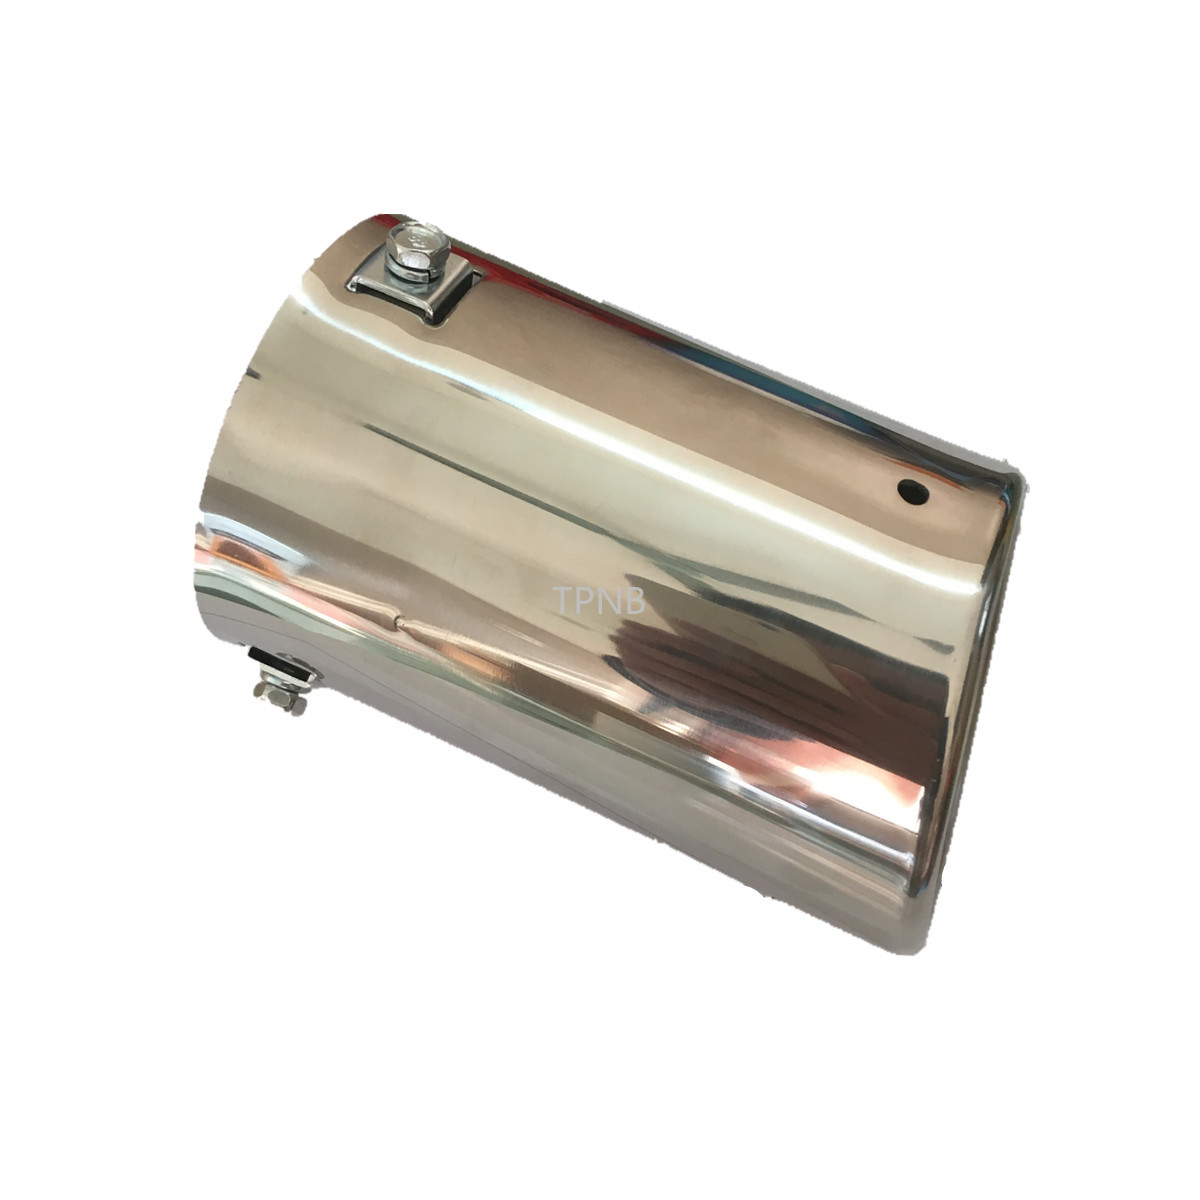 Stainless Steel Exhaust Pipe Tail Throat for <font><b>Toyota</b></font> <font><b>Land</b></font> <font><b>Cruiser</b></font> <font><b>Prado</b></font> <font><b>120</b></font> 2003 2004 2005 <font><b>2006</b></font> 2007 2008 2009 Accessories image